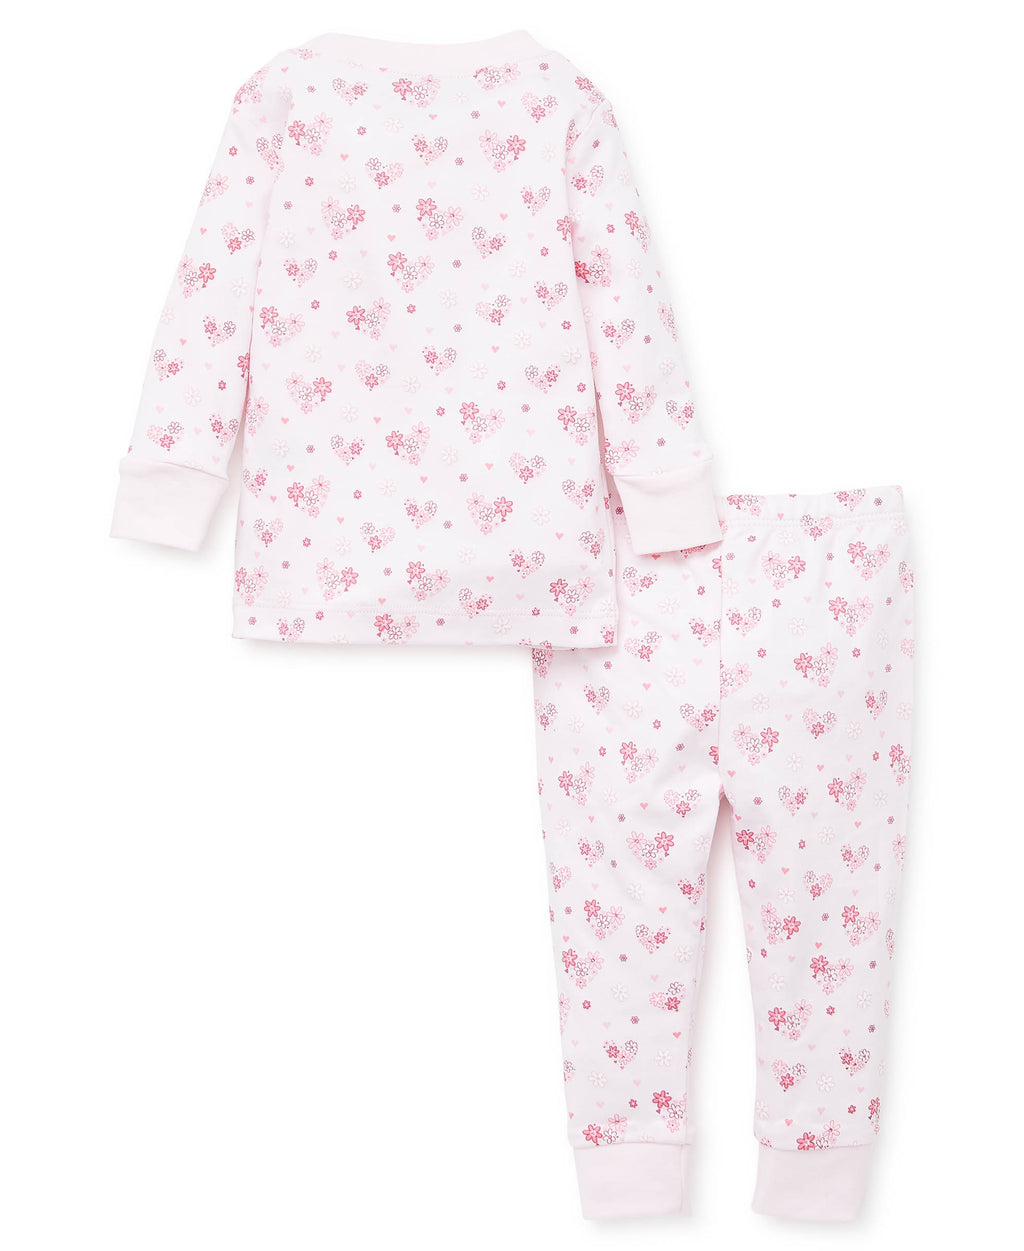 Tender Hearts Pajama Set